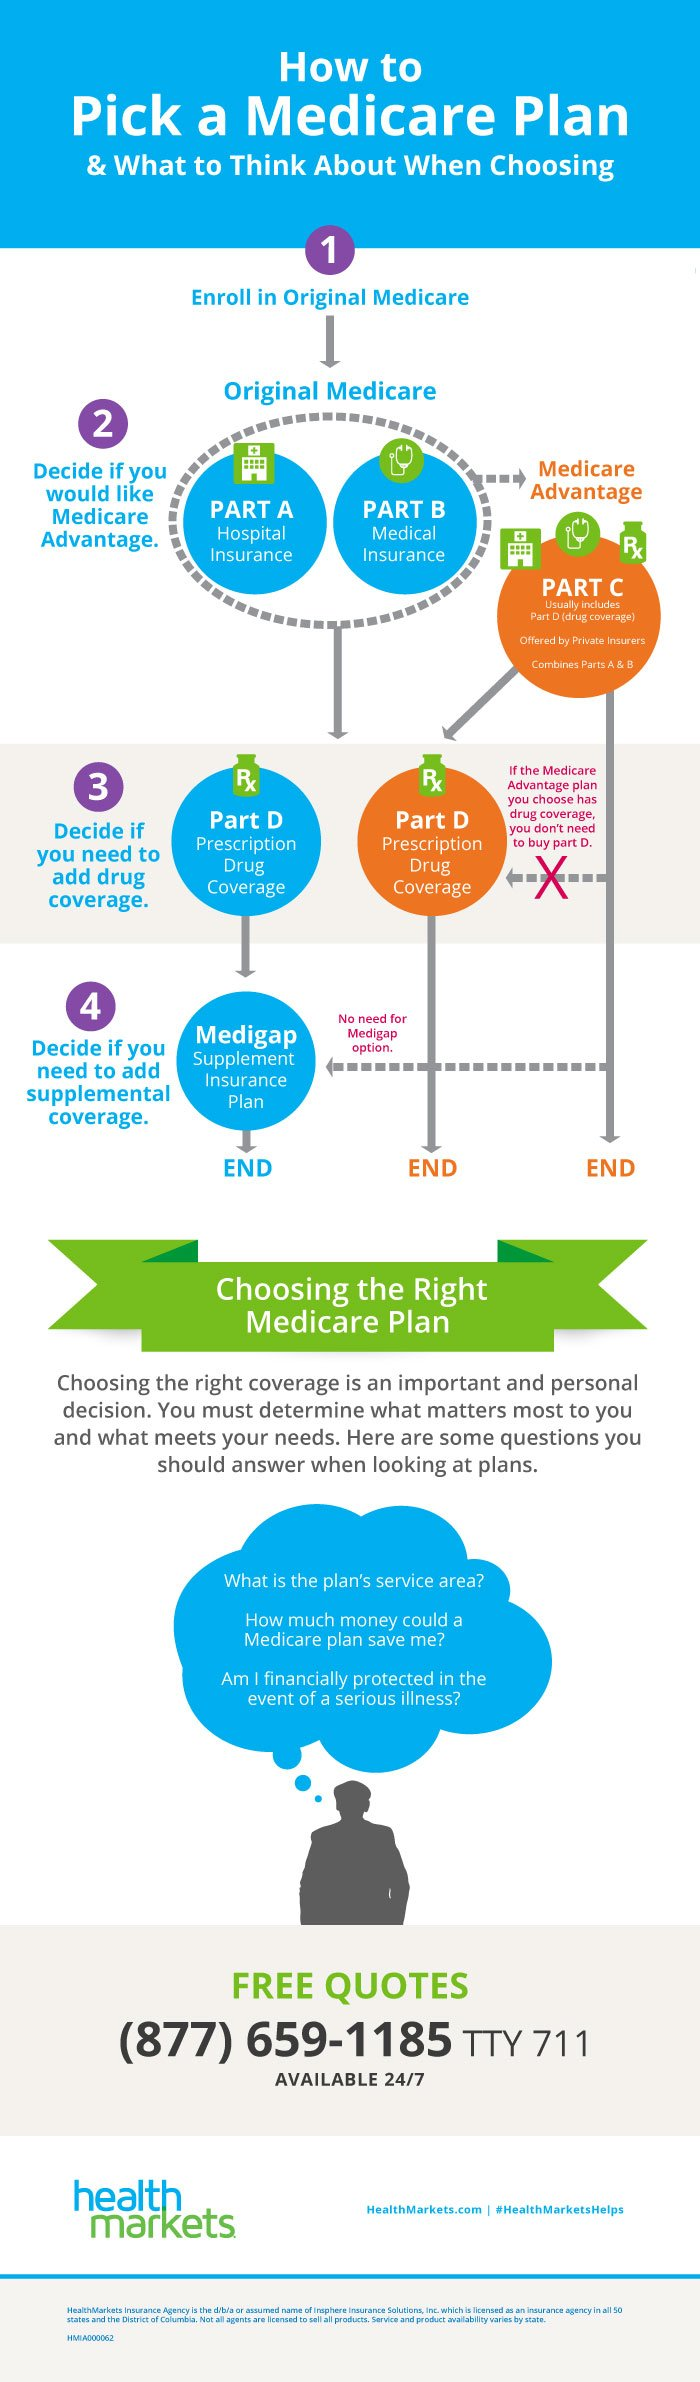 How to Pick a Medicare Plan Infographic